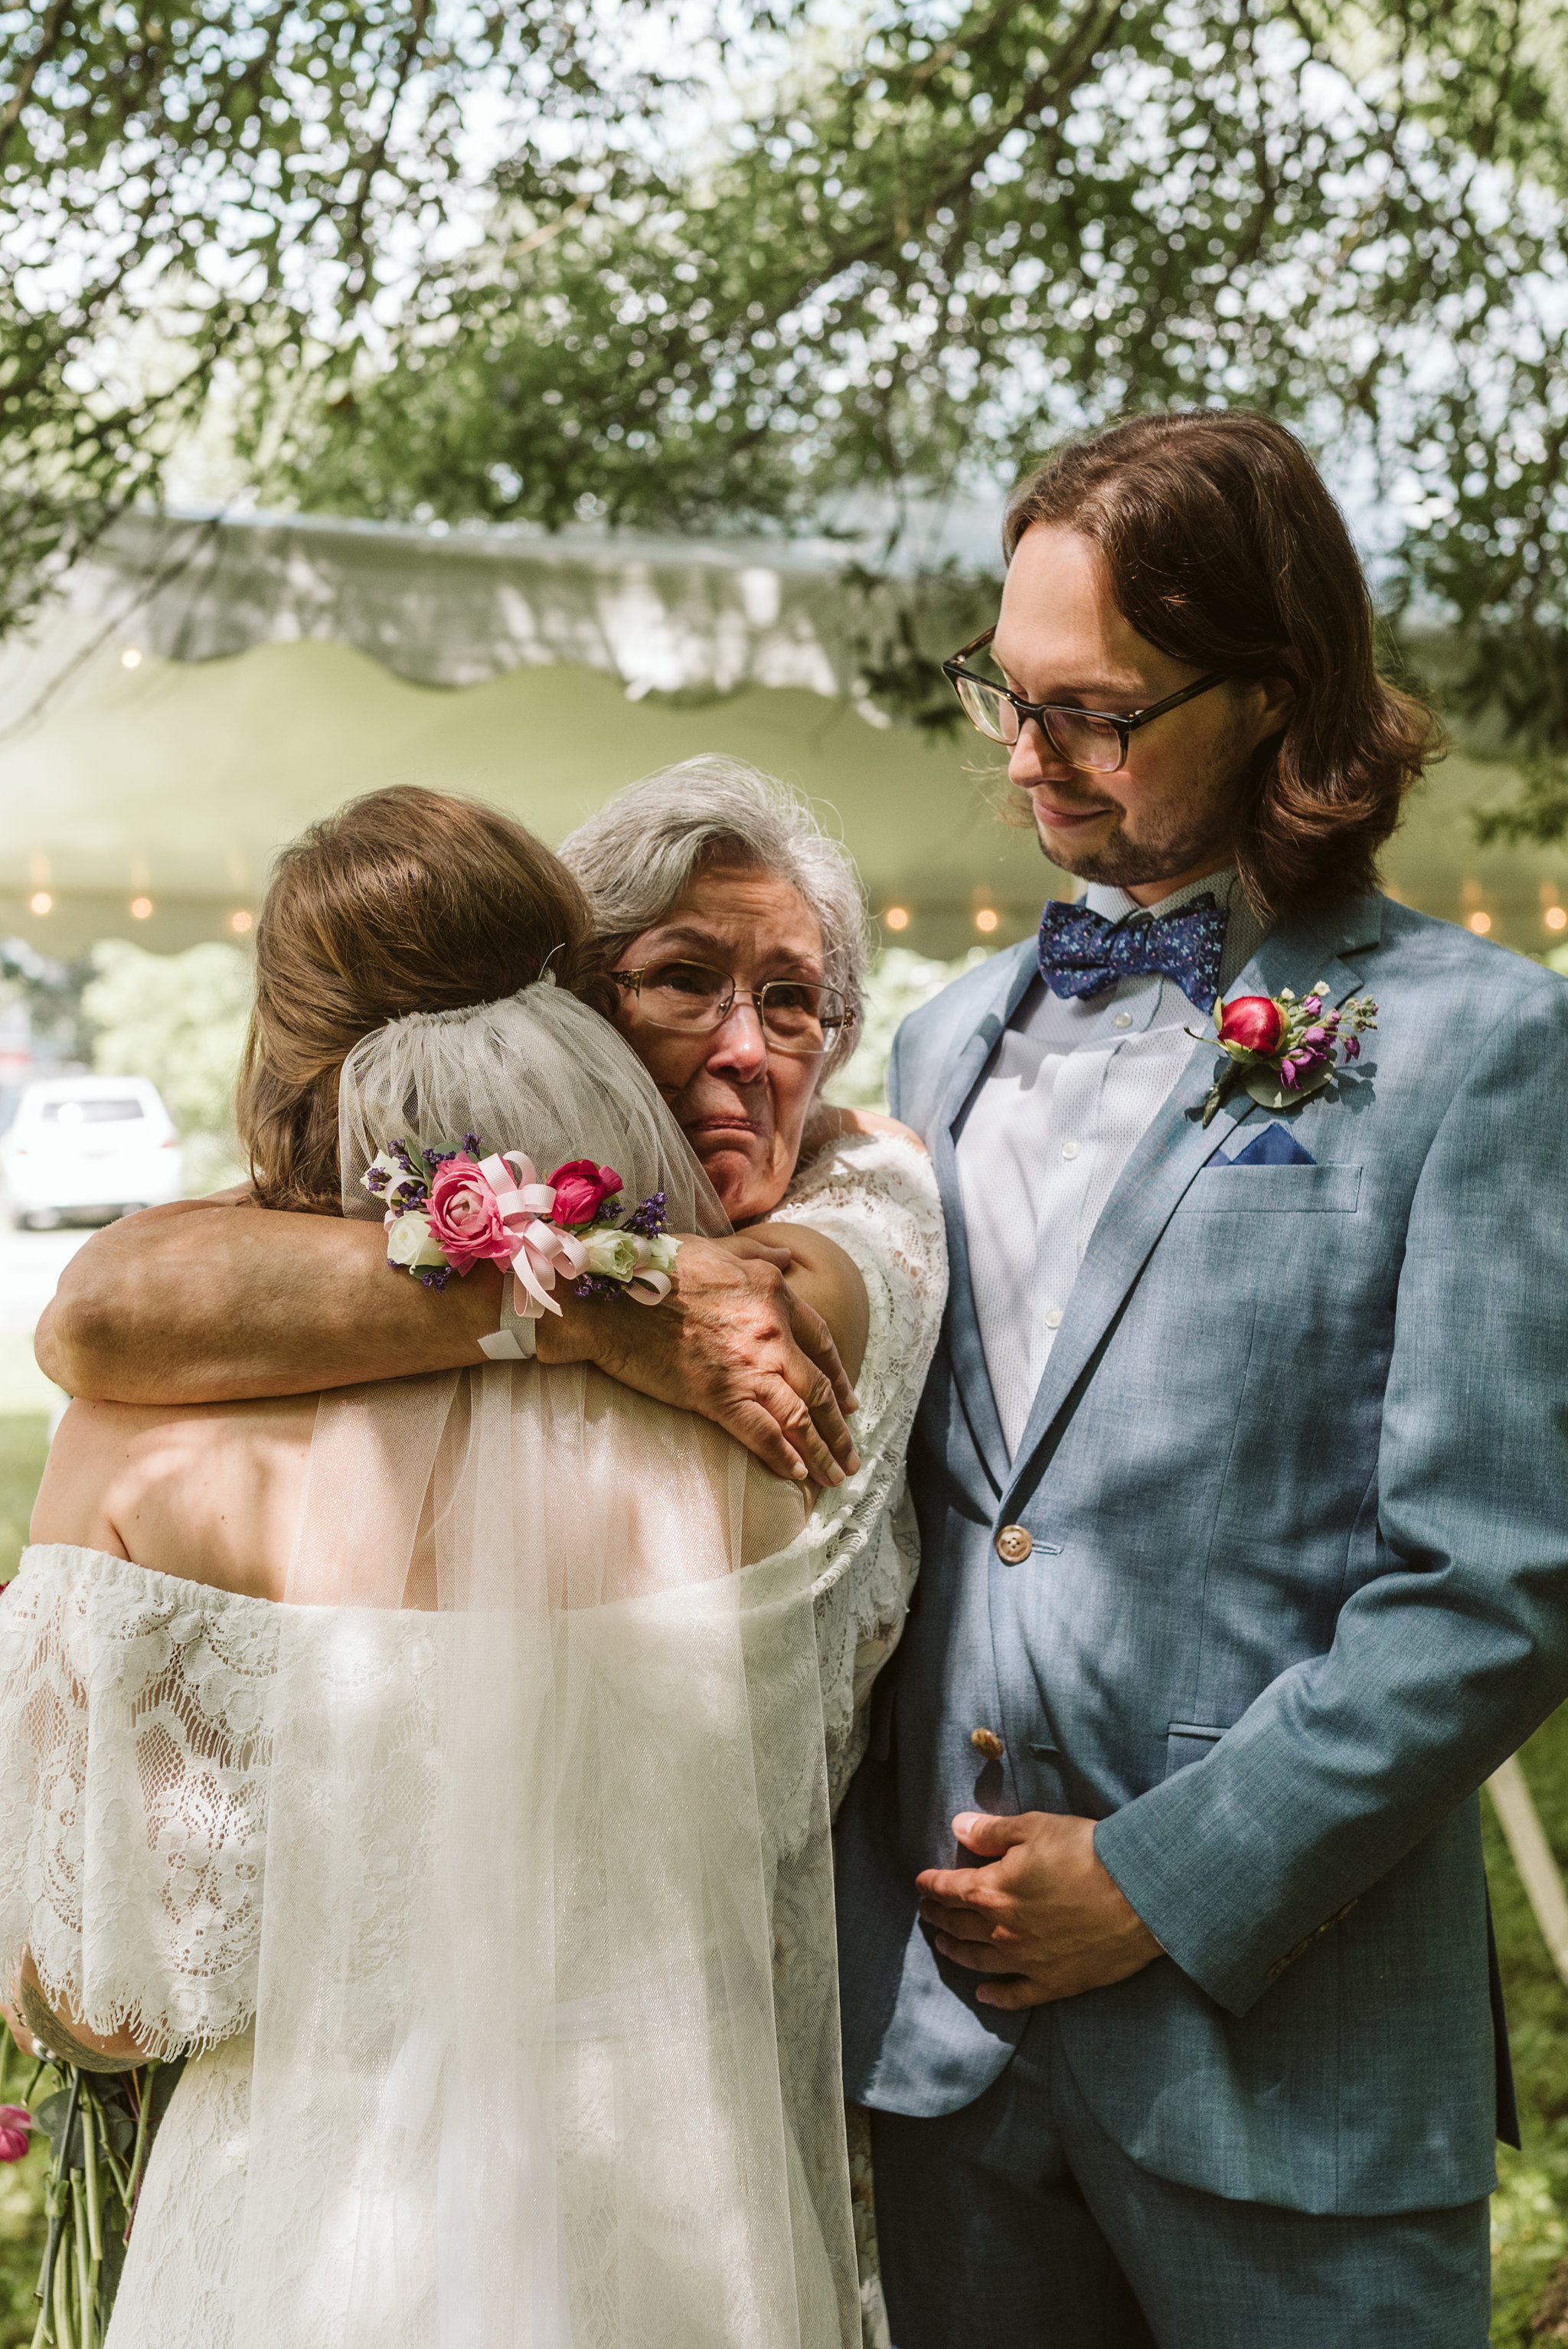 Annapolis, Quaker Wedding, Maryland Wedding Photographer, Intimate, Small Wedding, Vintage, DIY, Bride and Groom with Mother of the Bride, Bride Hugging Mother